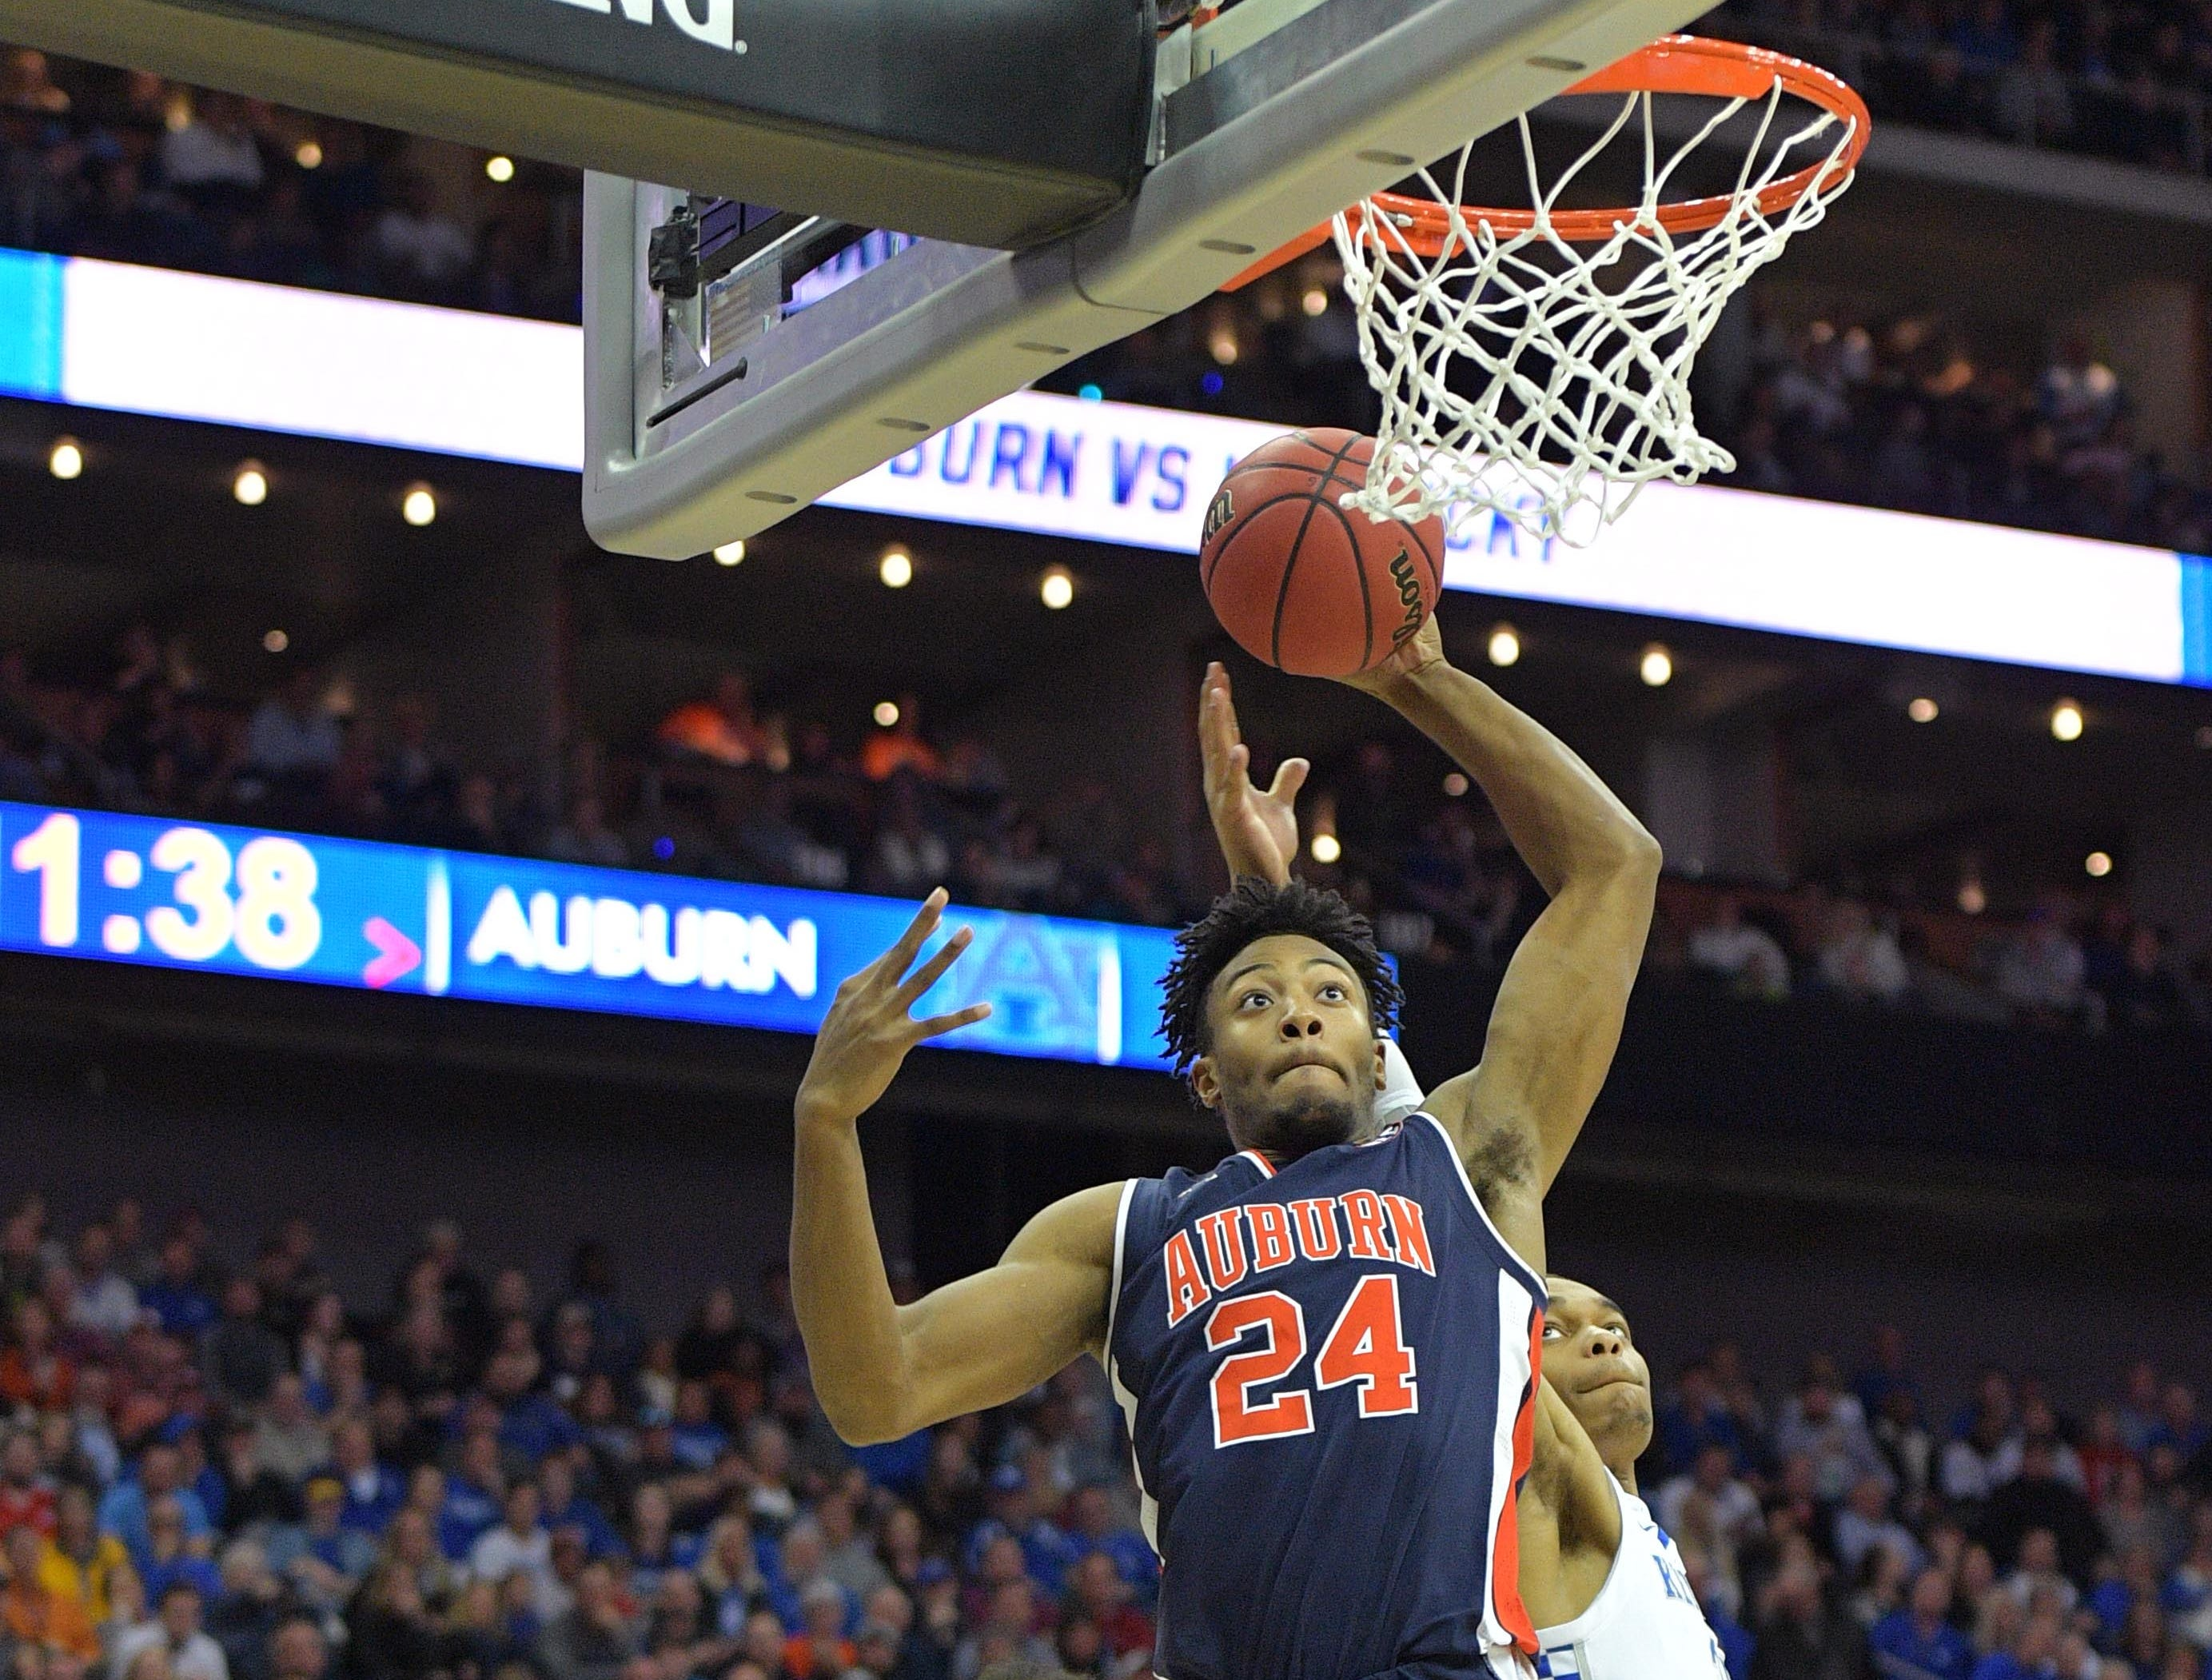 Mar 31, 2019; Kansas City, MO, United States; Auburn Tigers forward Anfernee McLemore (24) shoots as Kentucky Wildcats guard Ashton Hagans (2) watches during the second half in the championship game of the midwest regional of the 2019 NCAA Tournament at Sprint Center. Mandatory Credit: Denny Medley-USA TODAY Sports